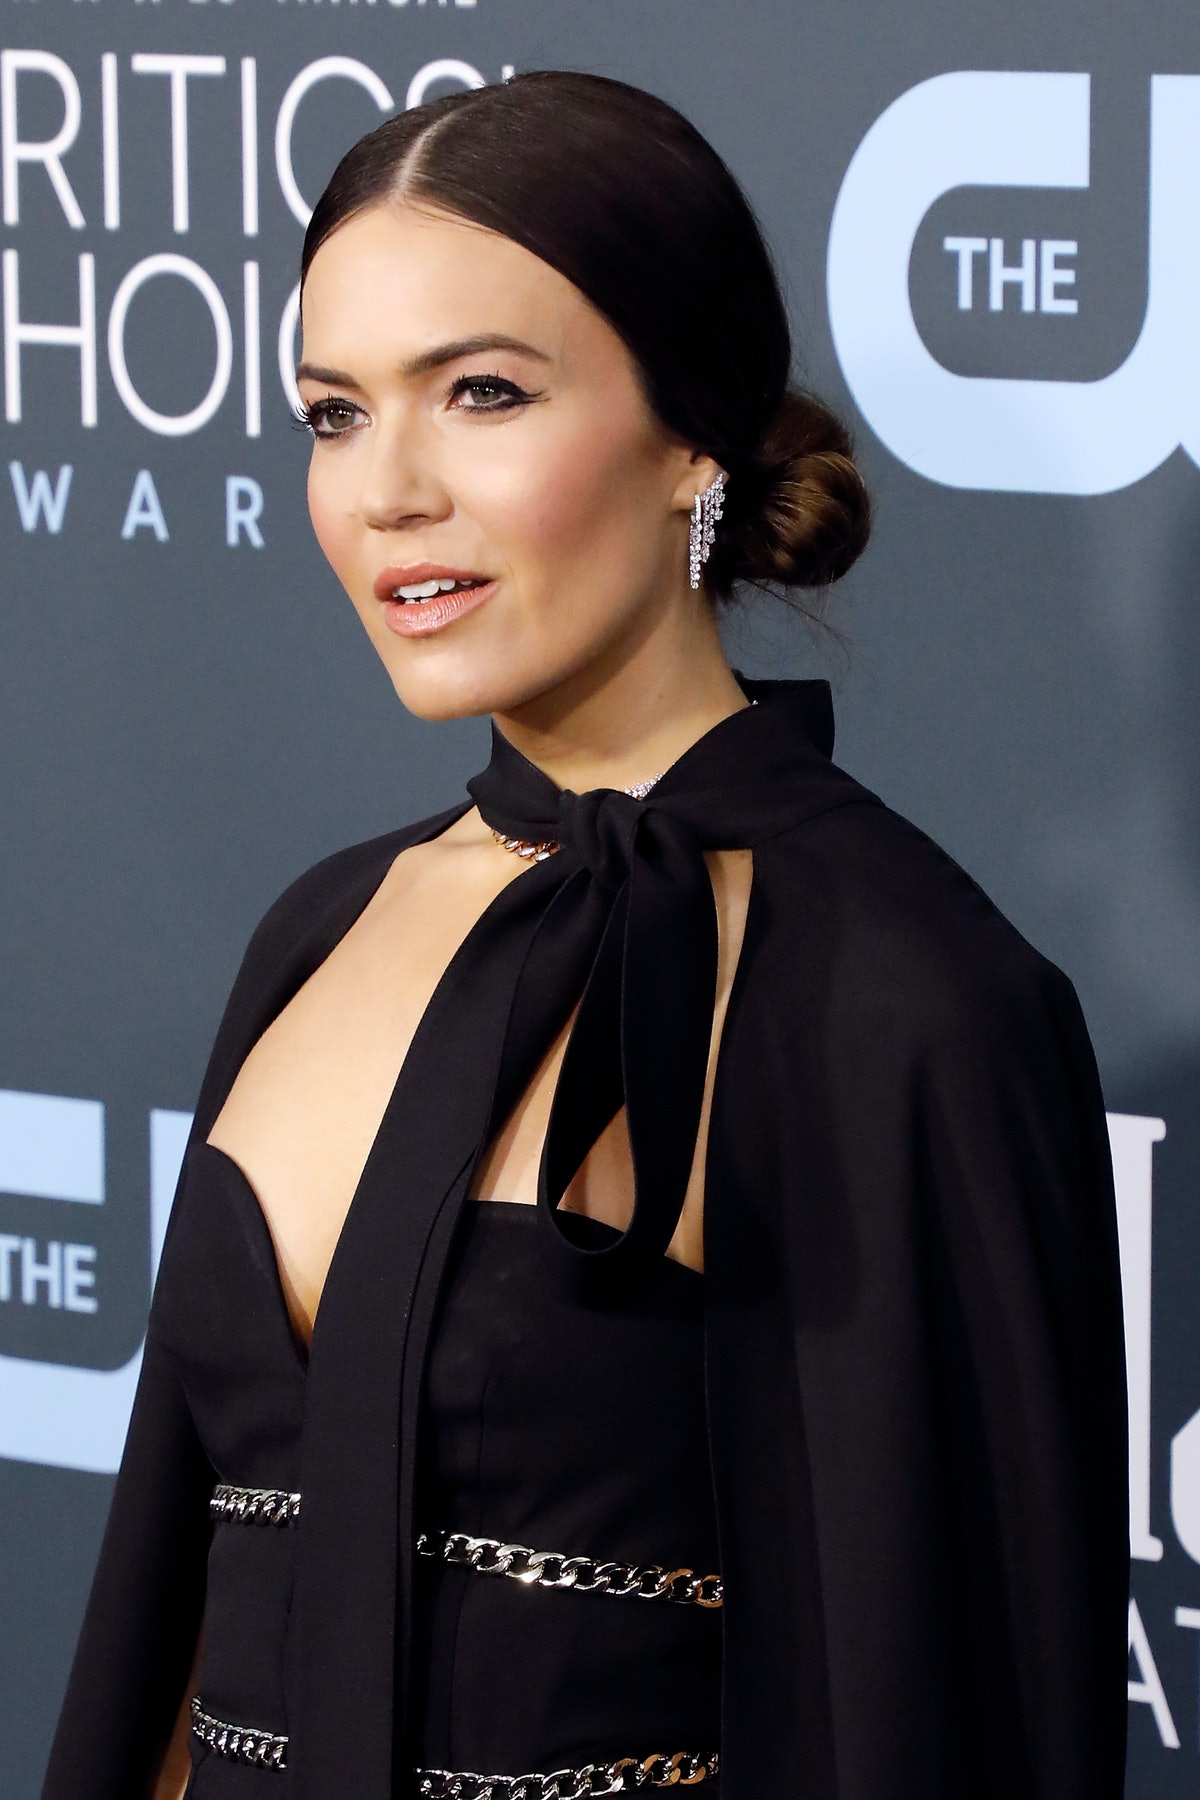 Mandy Moore hits the red carpet at an event for The CW.